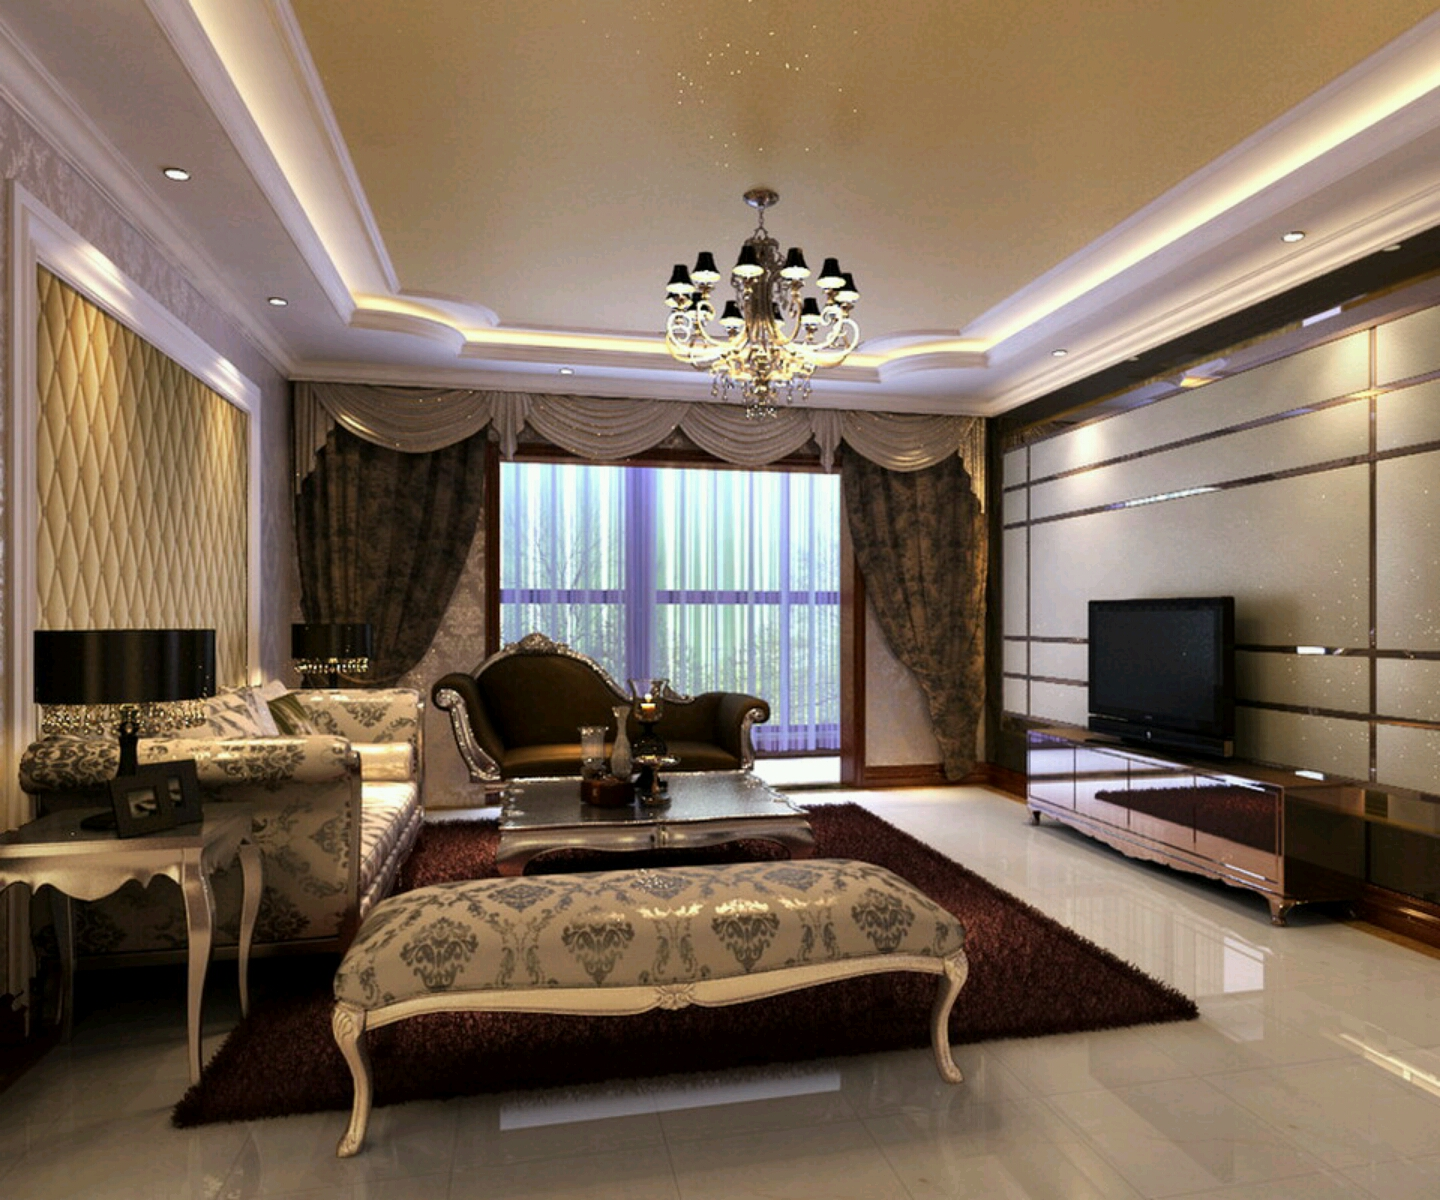 New home designs latest luxury homes interior decoration - House interior design pictures living room ...